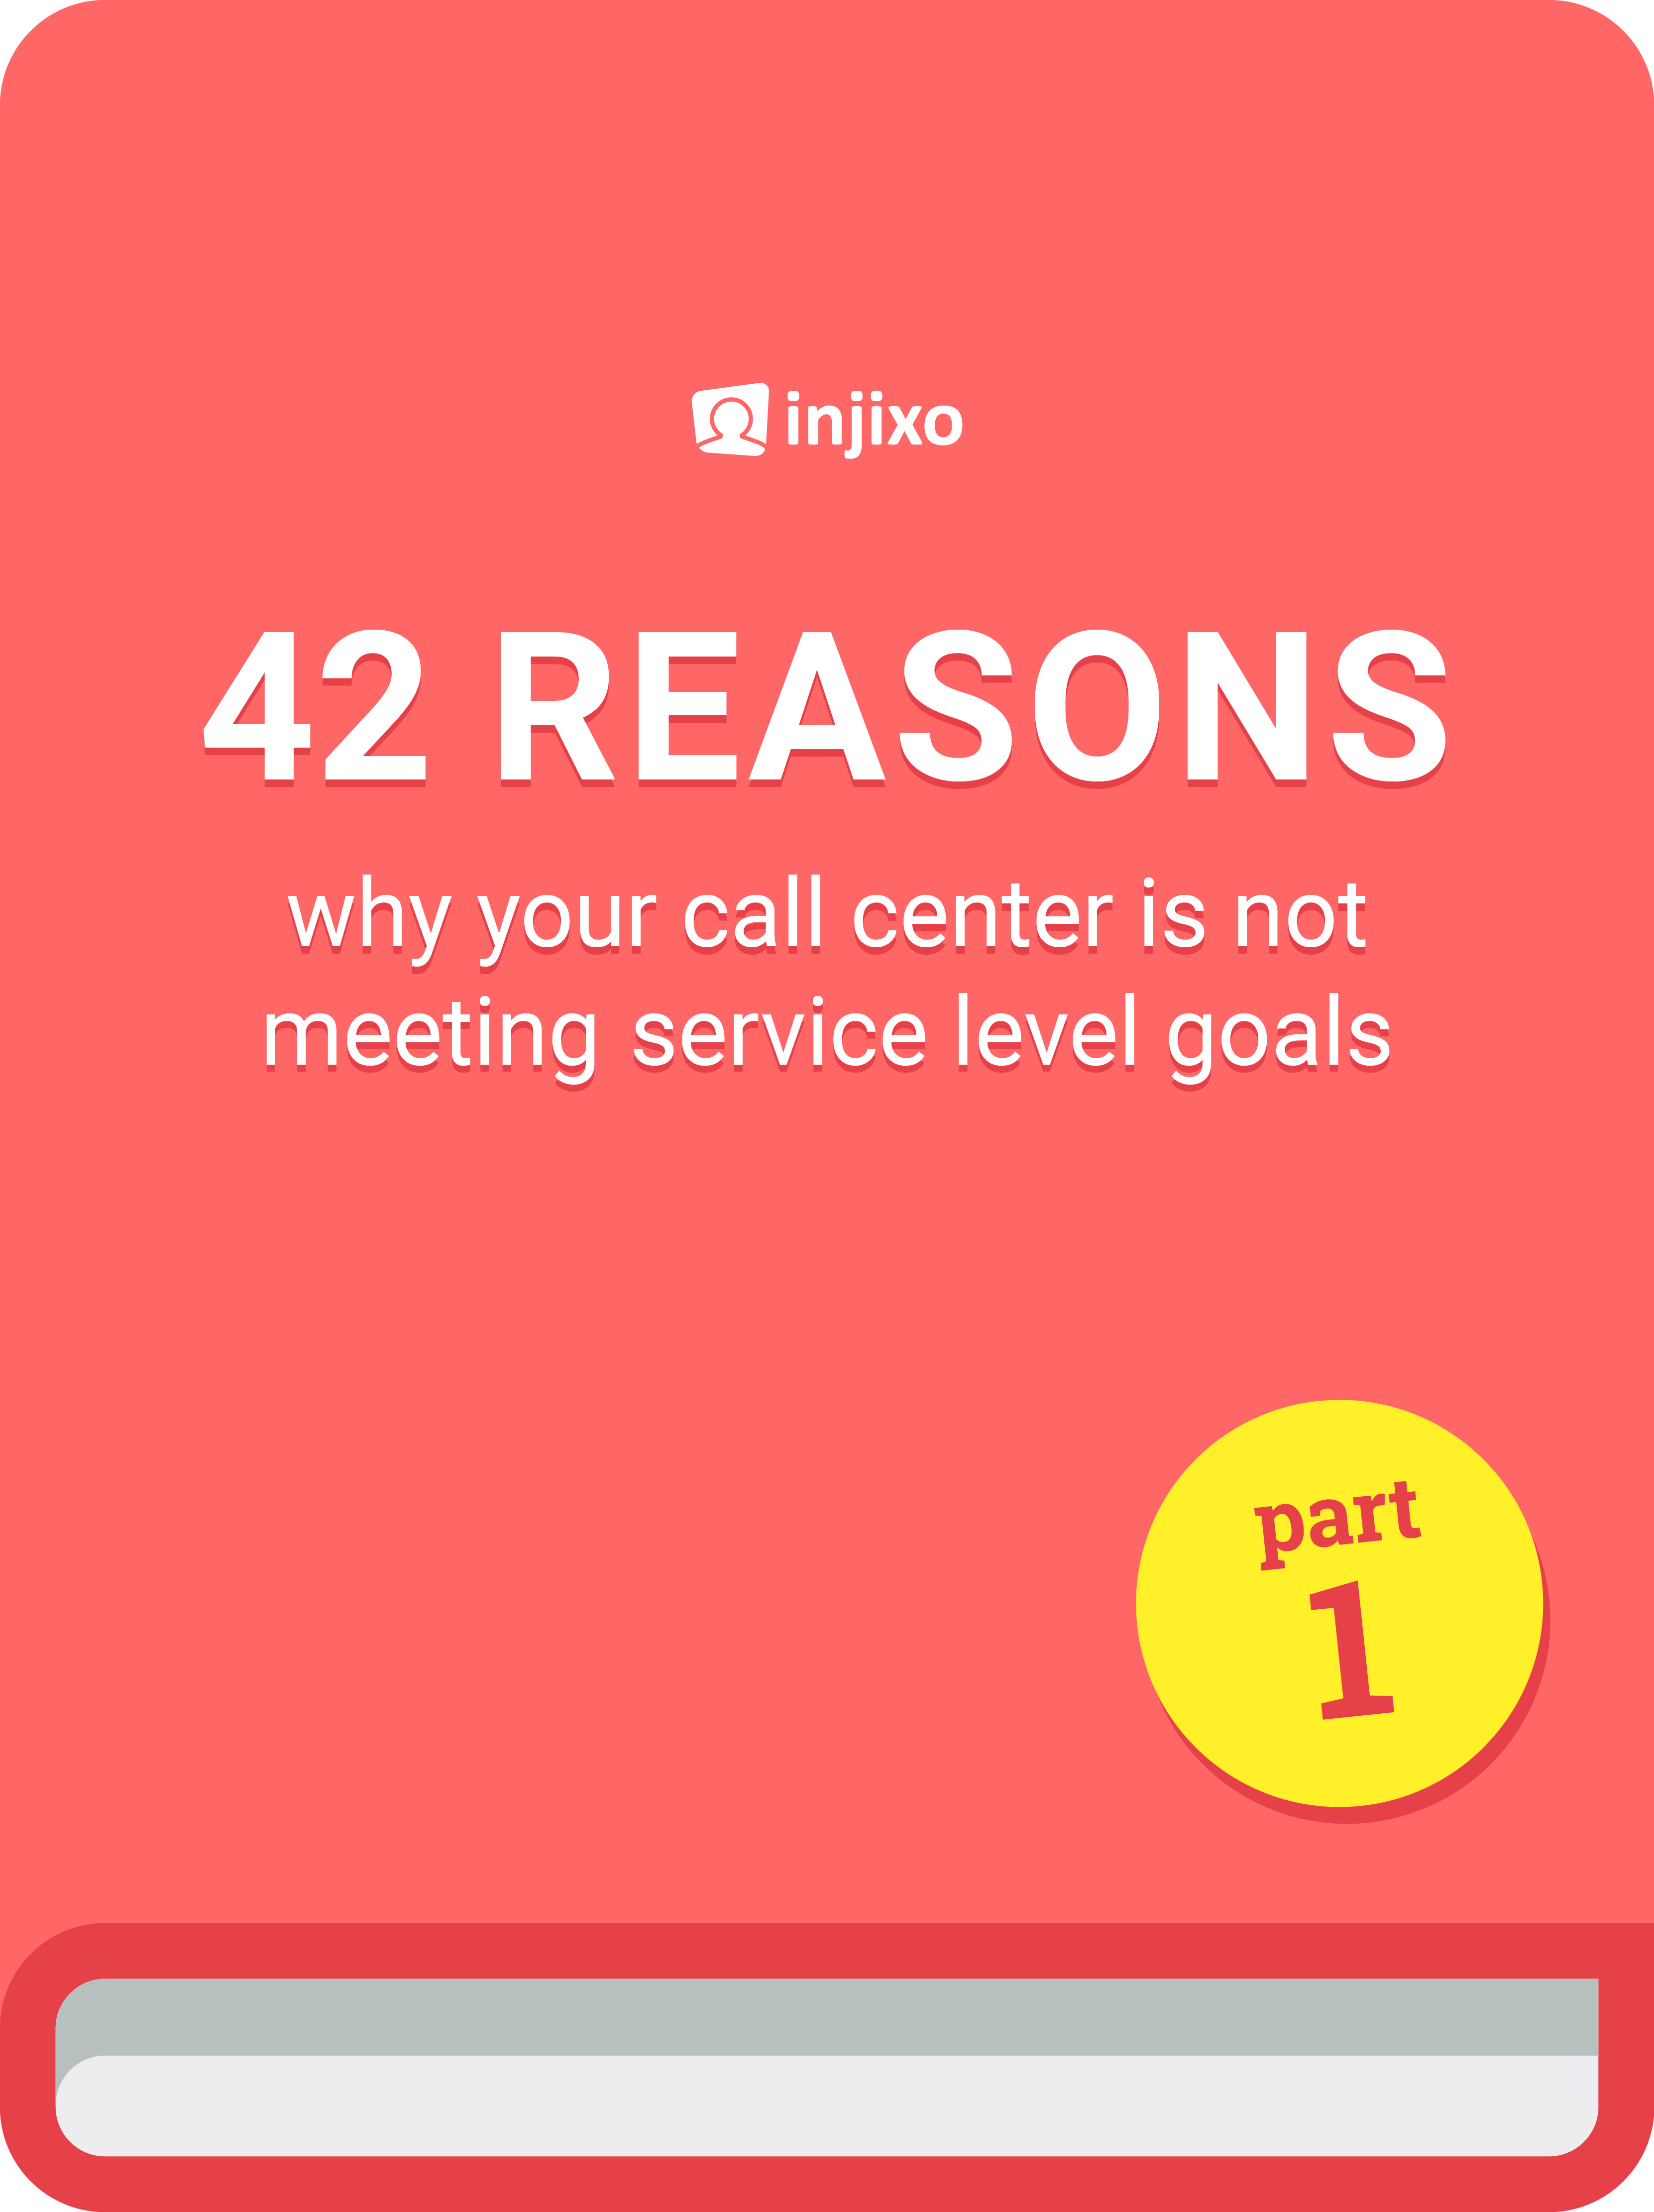 42 reasons why your call center is not meeting service level - injixo blog ebook